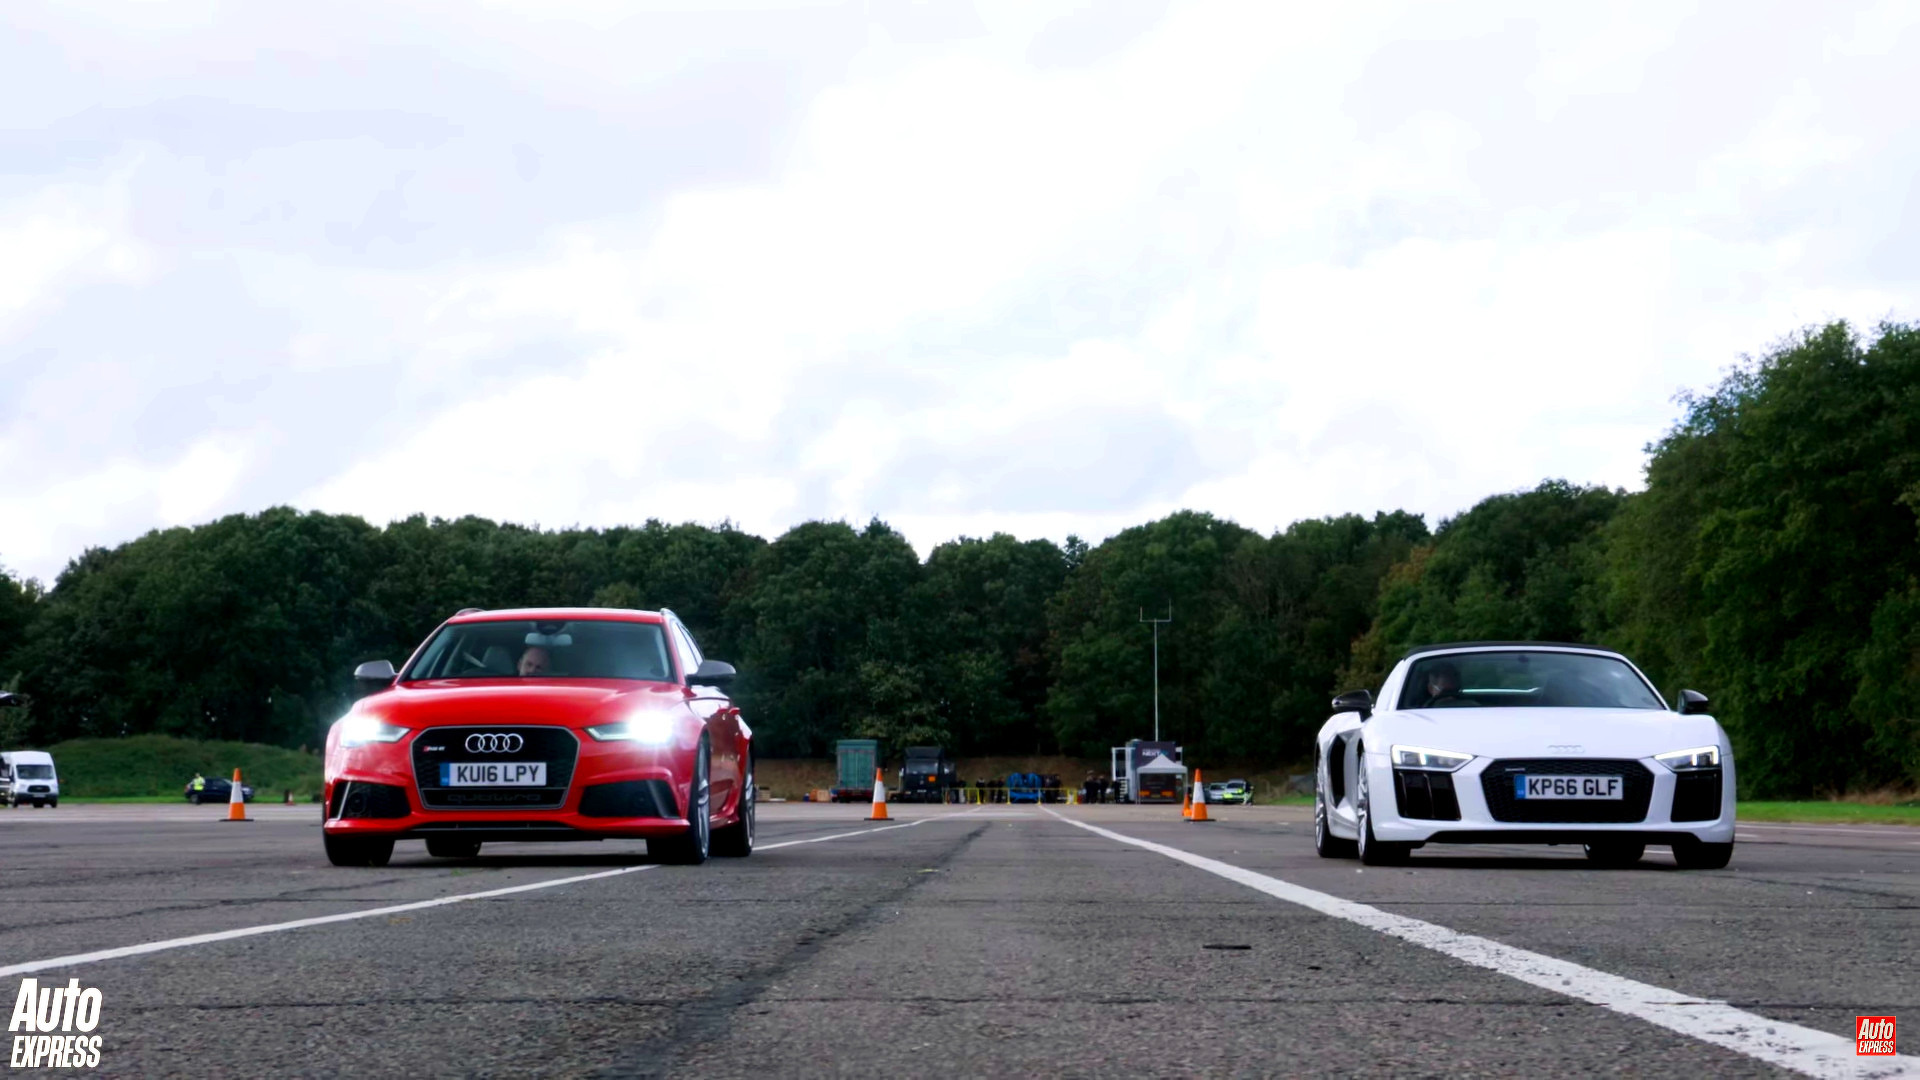 Can An Audi Rs6 Beat A R8 Spyder In A Drag Race